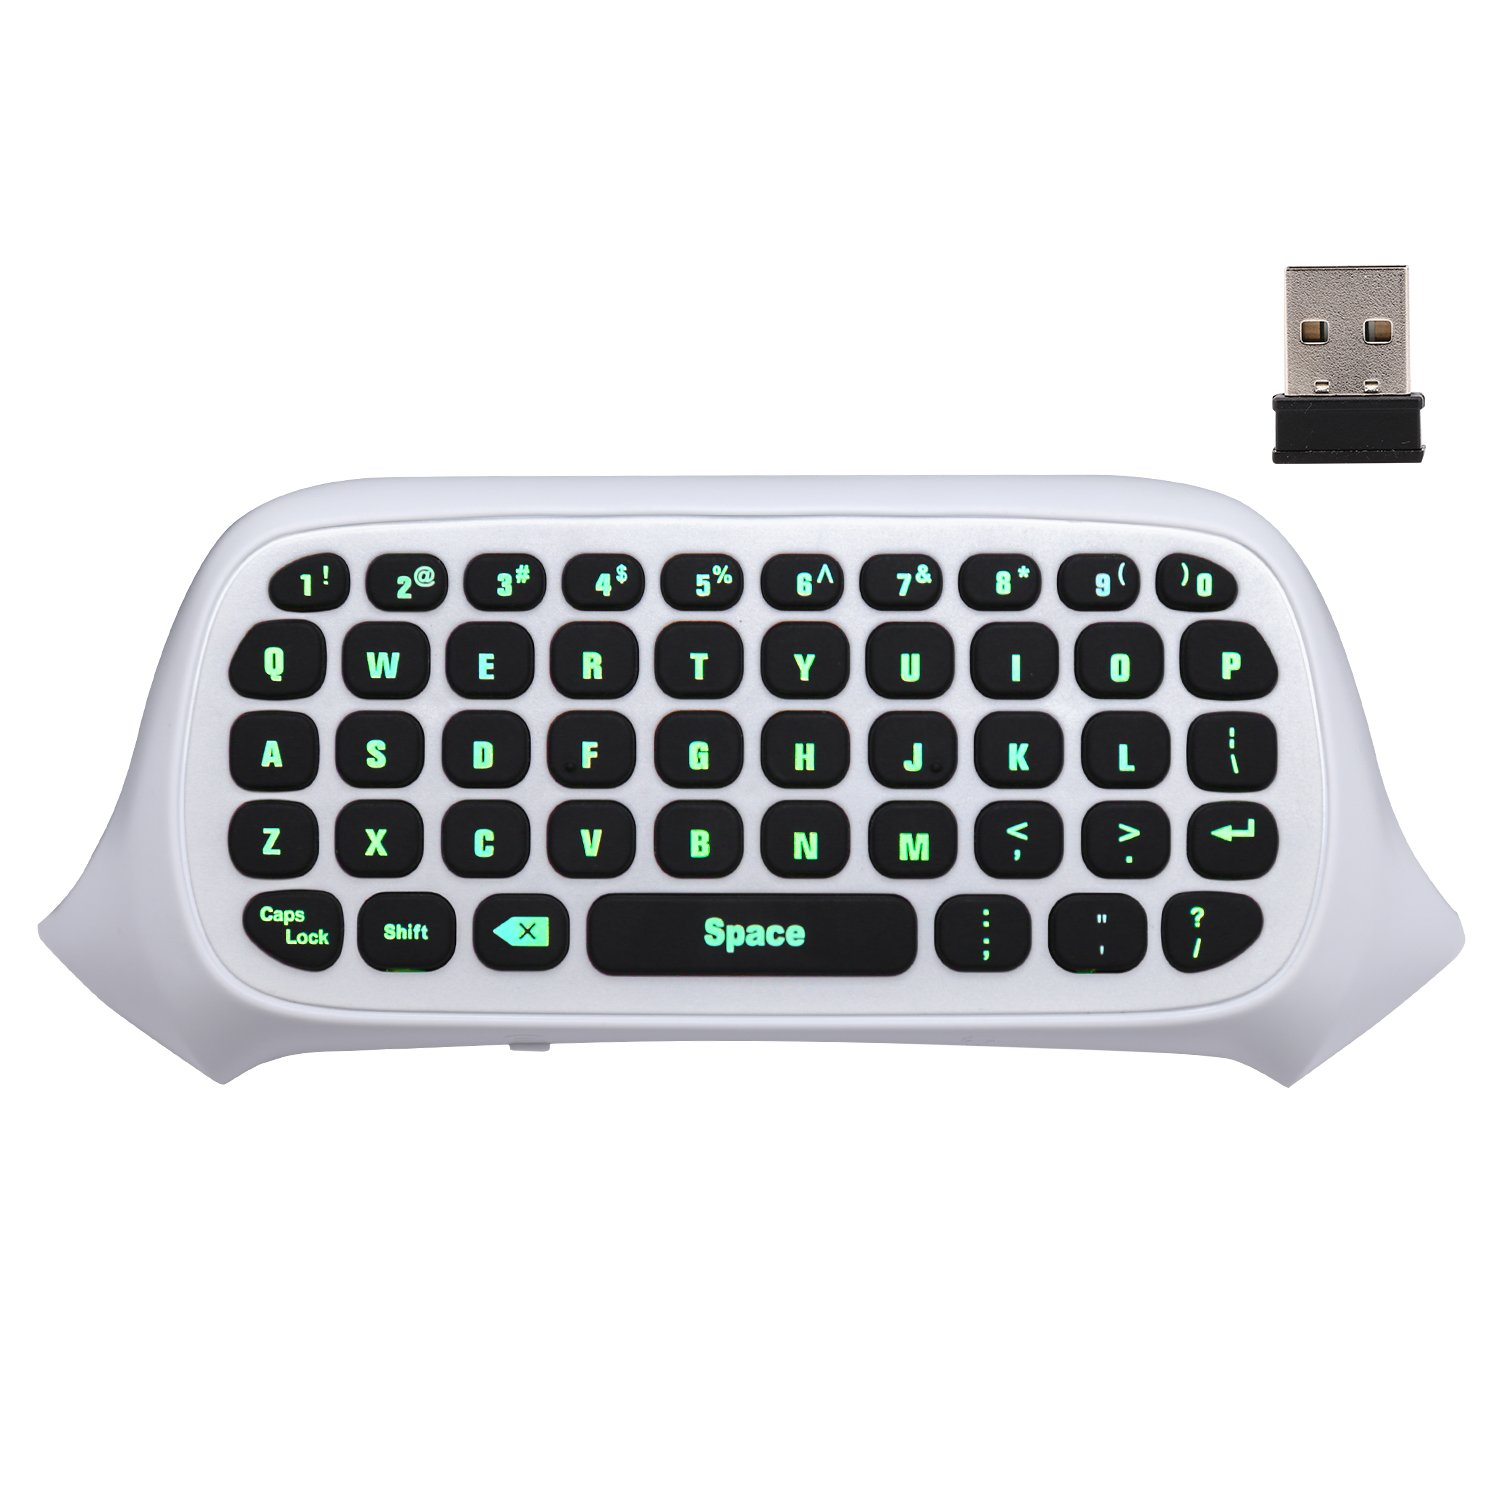 MoKo Xbox One Mini Green Backlight Keyboard, 2.4G Receiver Wireless Chatpad Message Game Keyboard Keypad, with Headset and Audio Jack, for Xbox One / Xbox One S / Xbox One Elite Controller, White